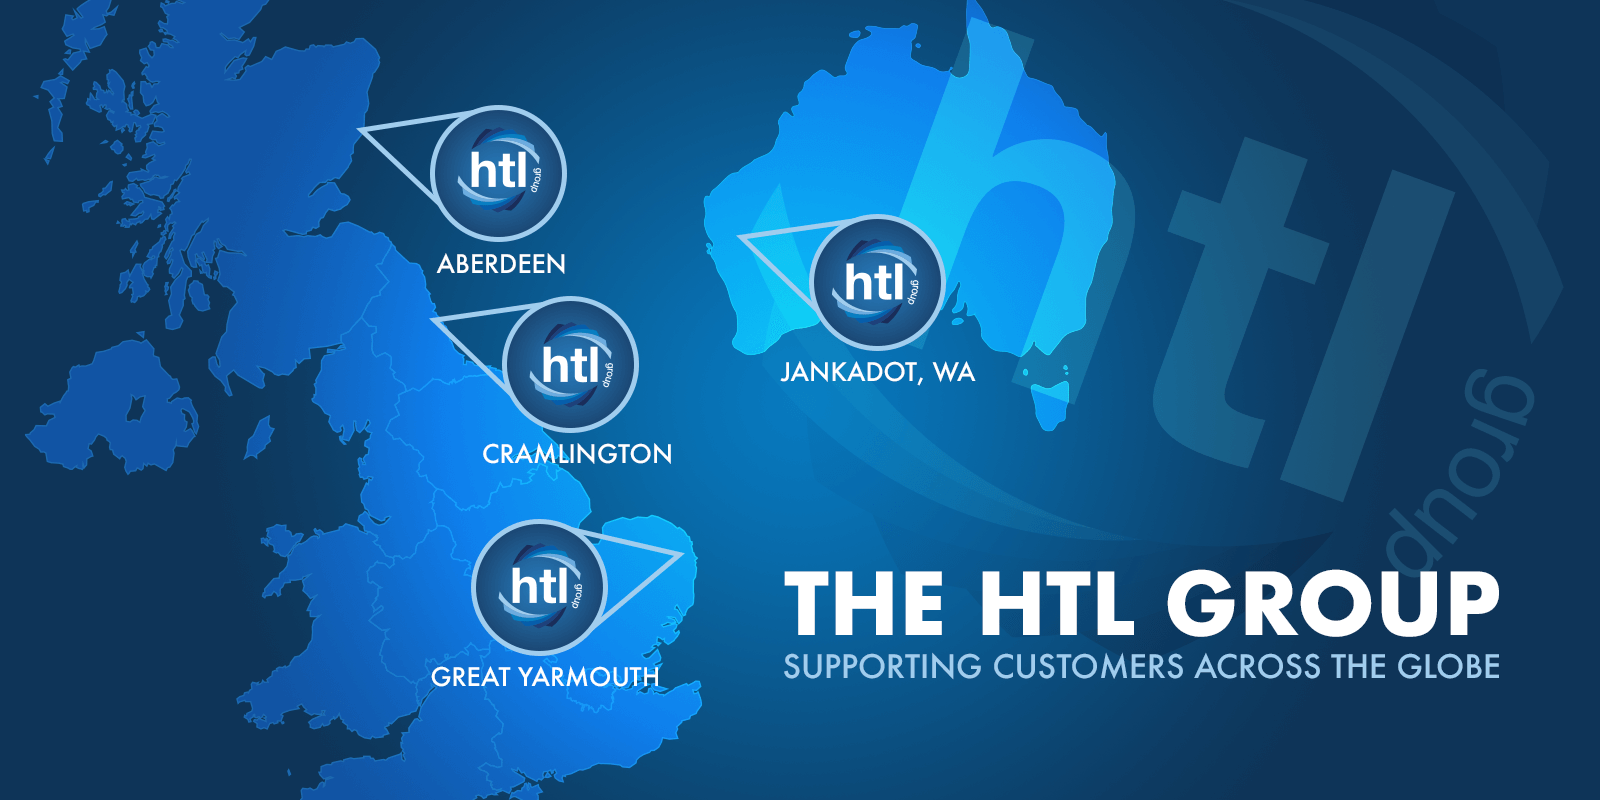 htl group locations